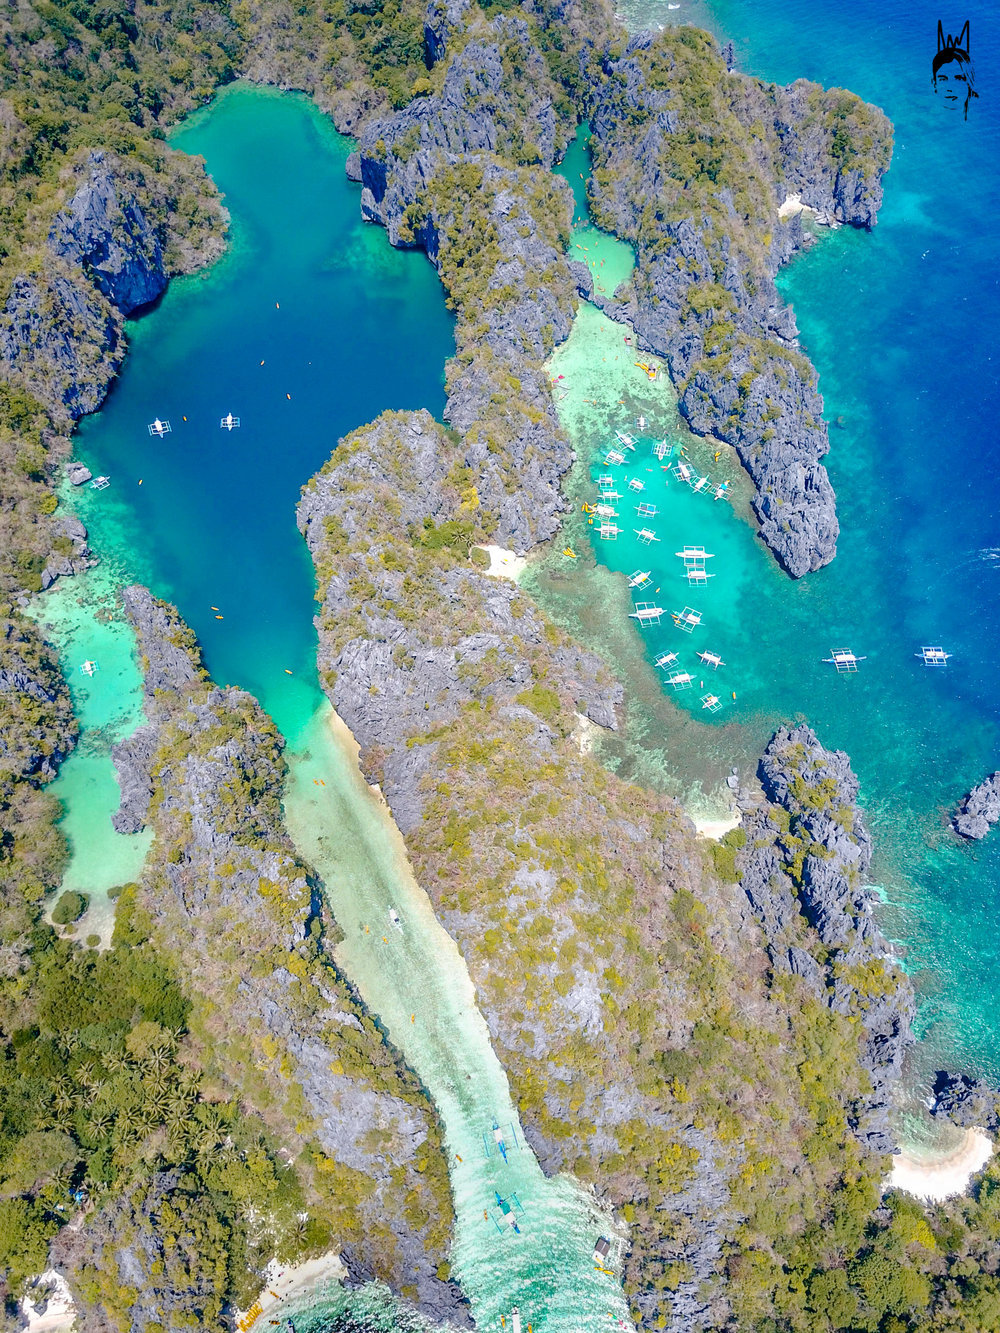 Small Lagoon (right) & Big Lagoon (left) El Nido